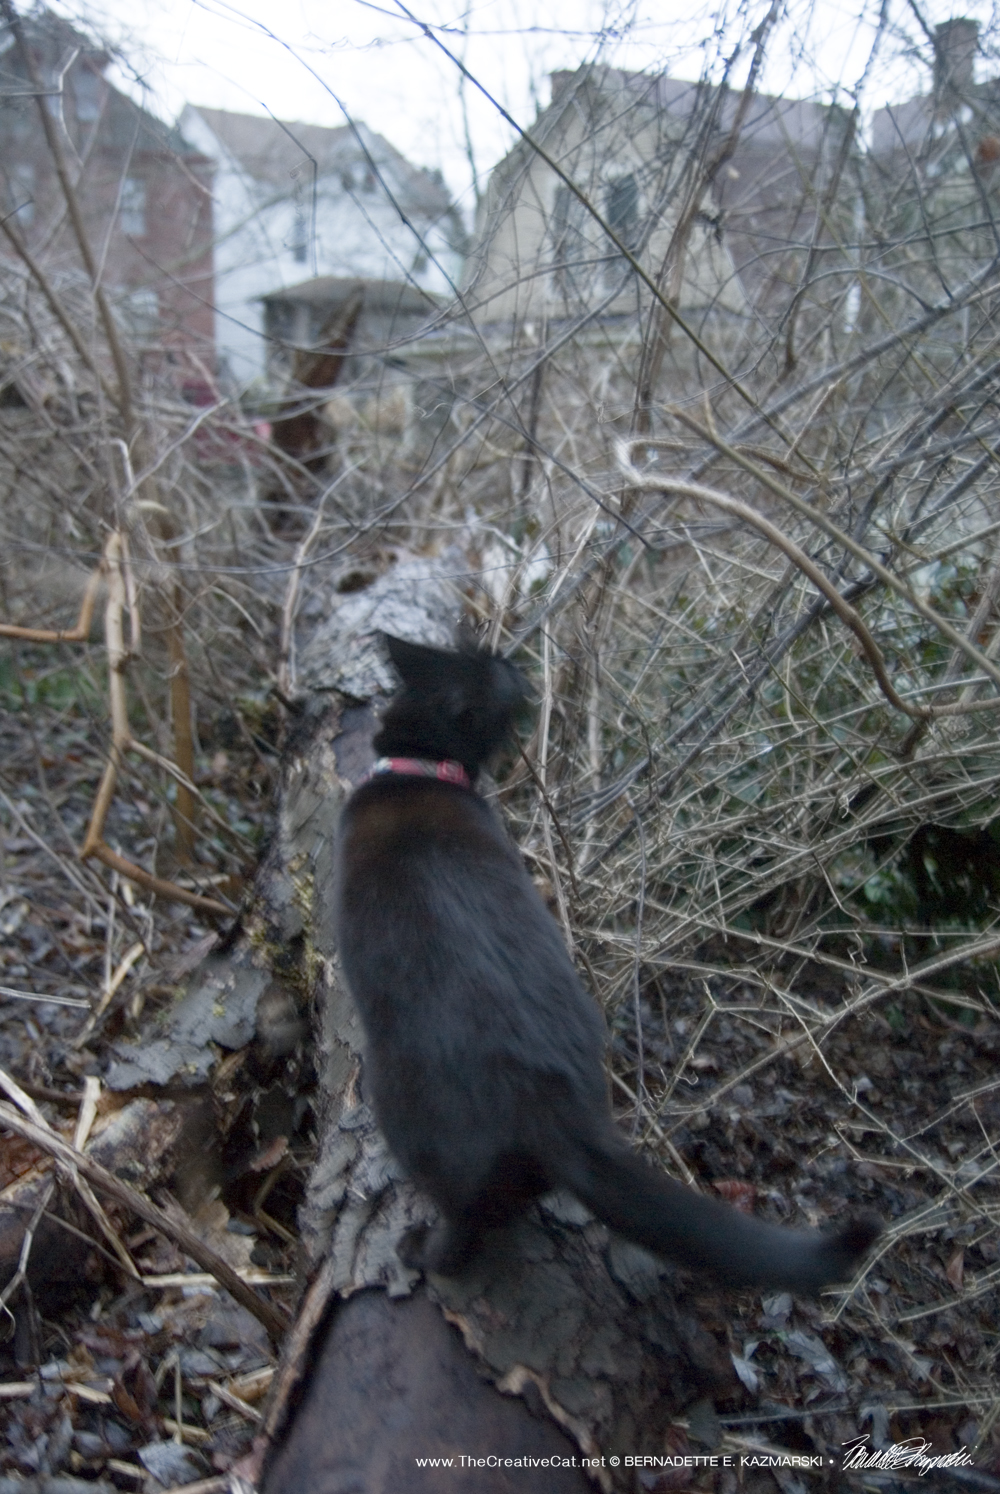 Mimi walks along the tree trunk on the ground.